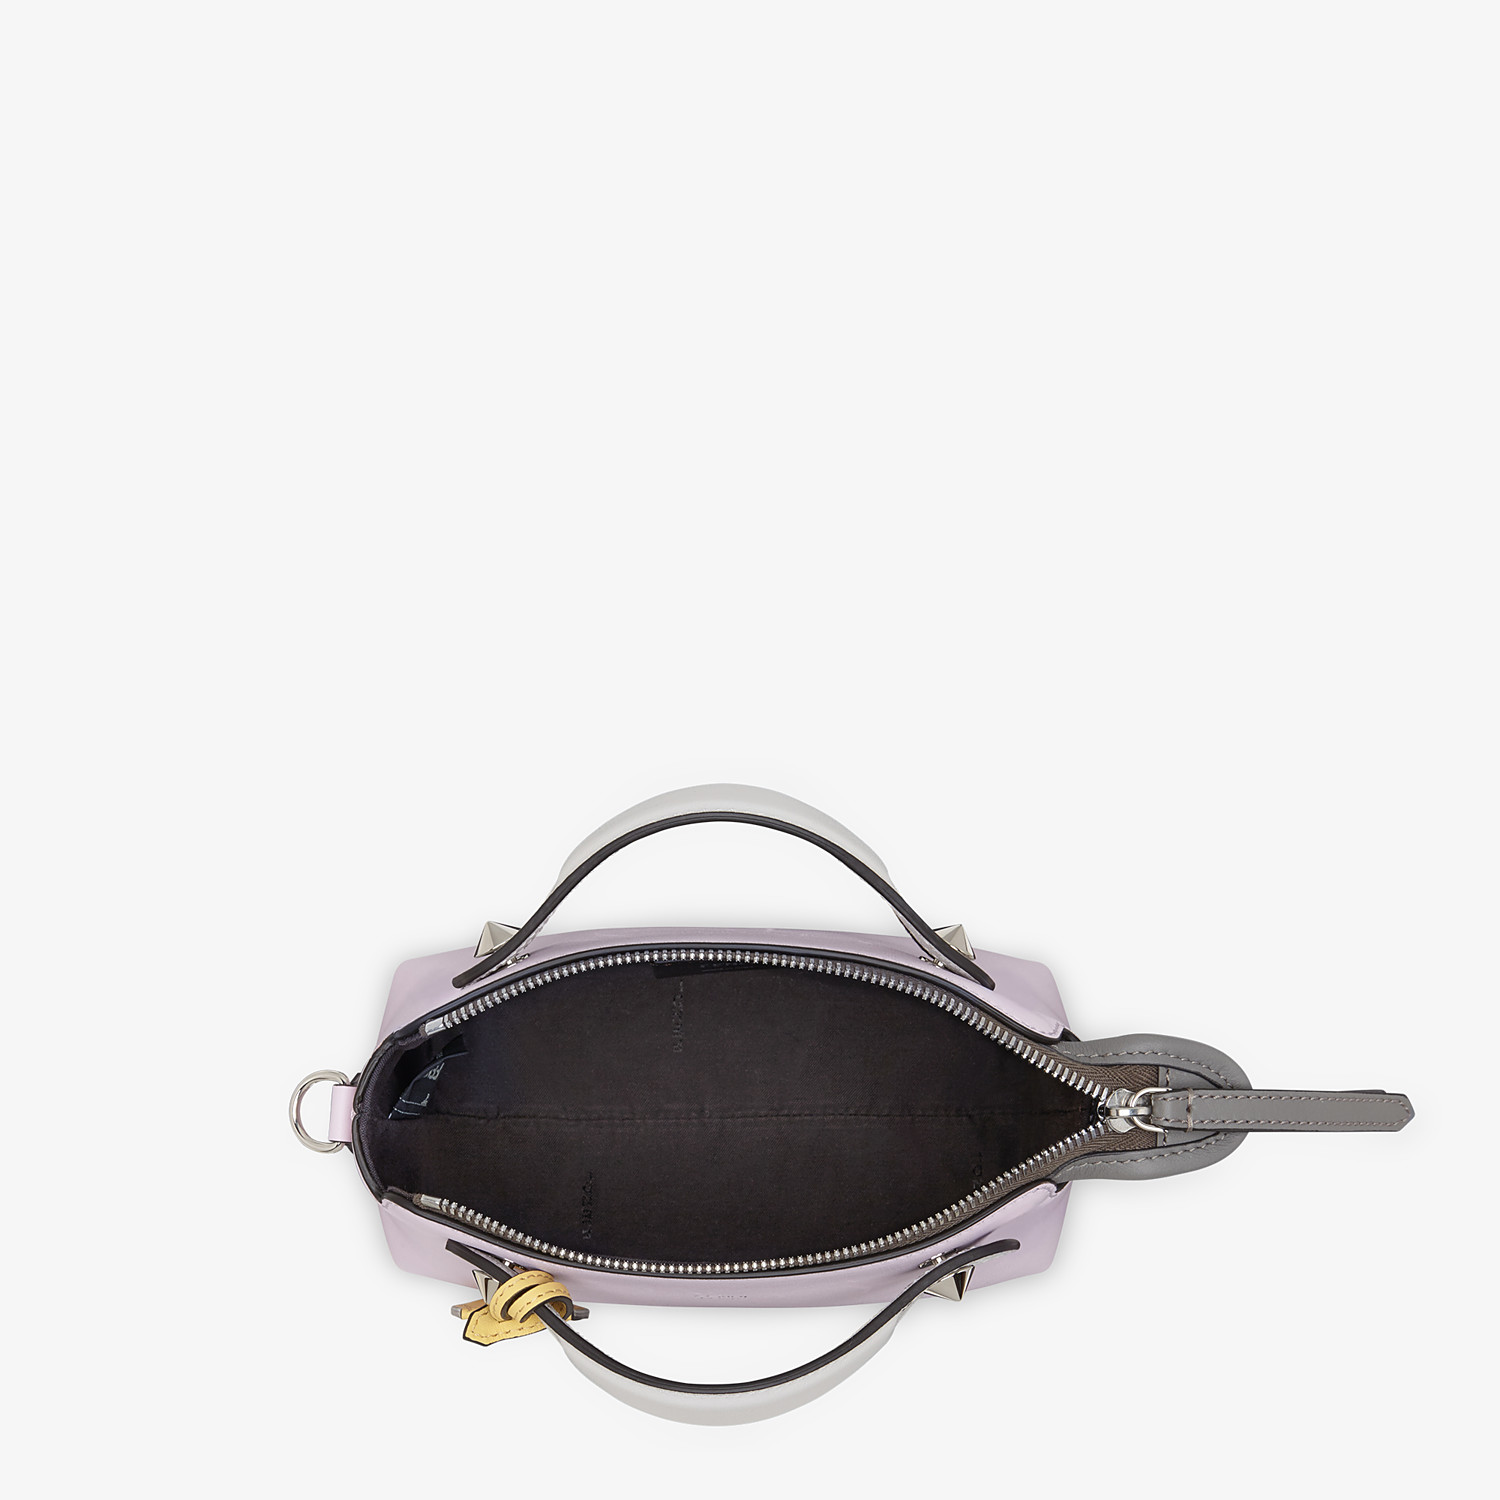 FENDI BY THE WAY MINI - Multicolor leather Boston bag - view 4 detail